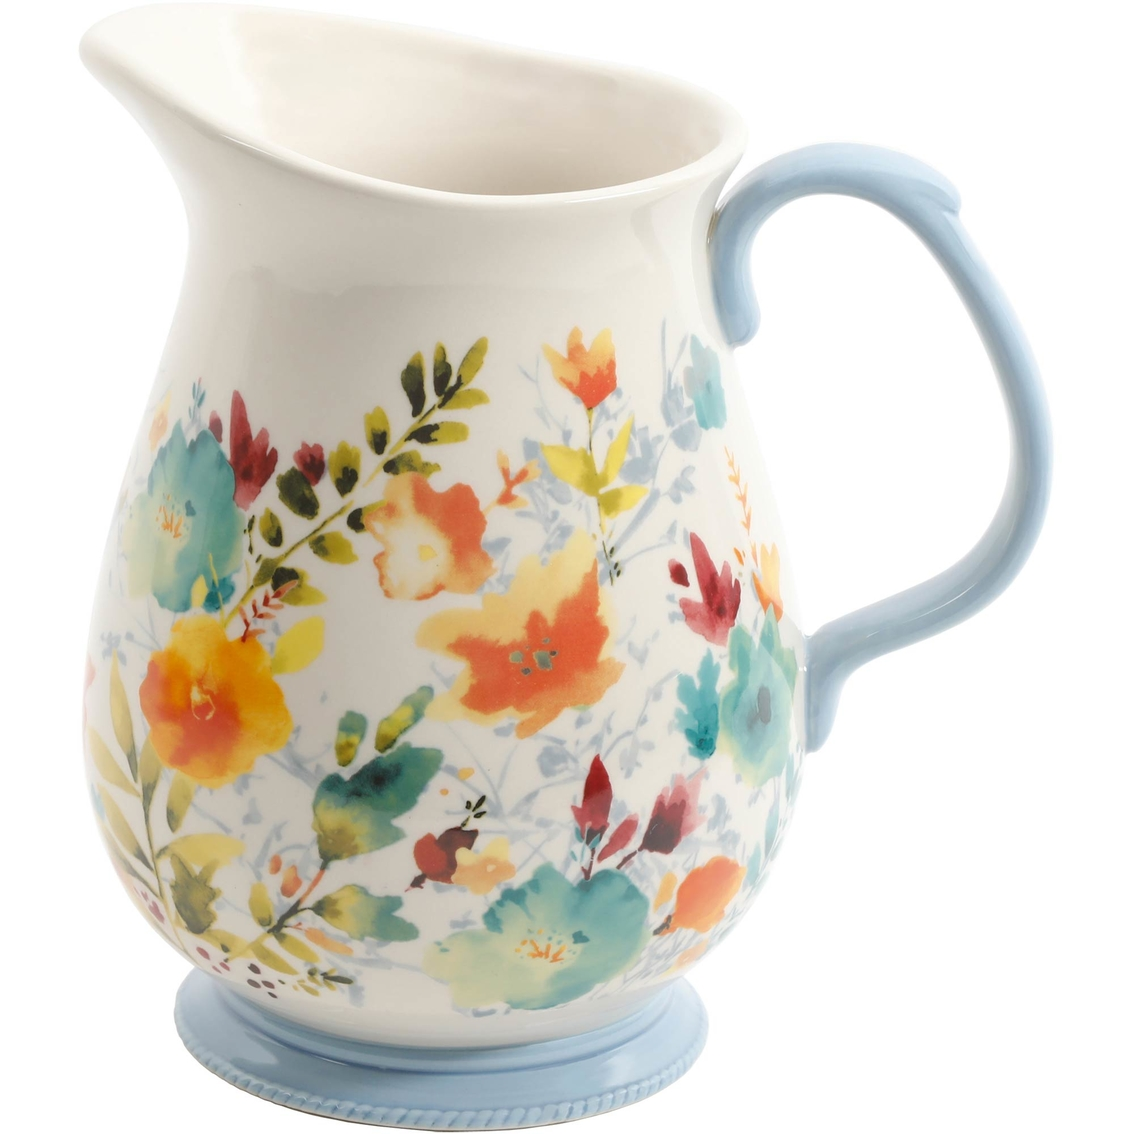 Pioneer Woman Willow Beverage Pitcher 32 Qt Pitchers Home